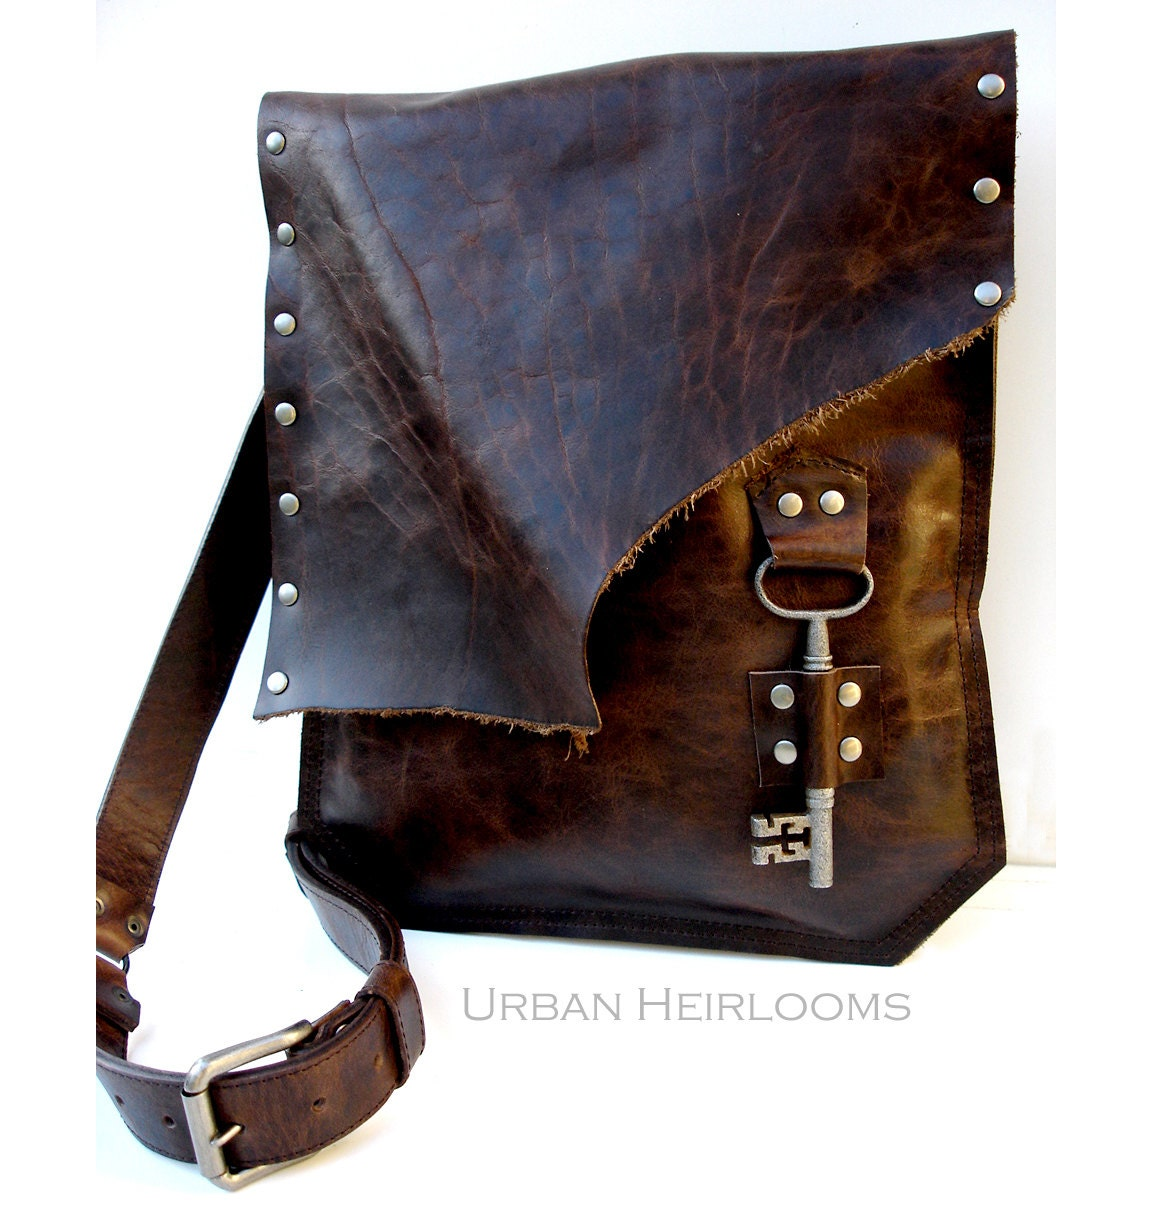 Floto messenger bags and cross body bags are handmade in Italy with % genuine leather. We only use the highest quality leather and materials available. Some of our leather messenger bags are offered in different colors like Vecchio Brown, Olive (Honey) Brown, Tuscan Red, and Black.